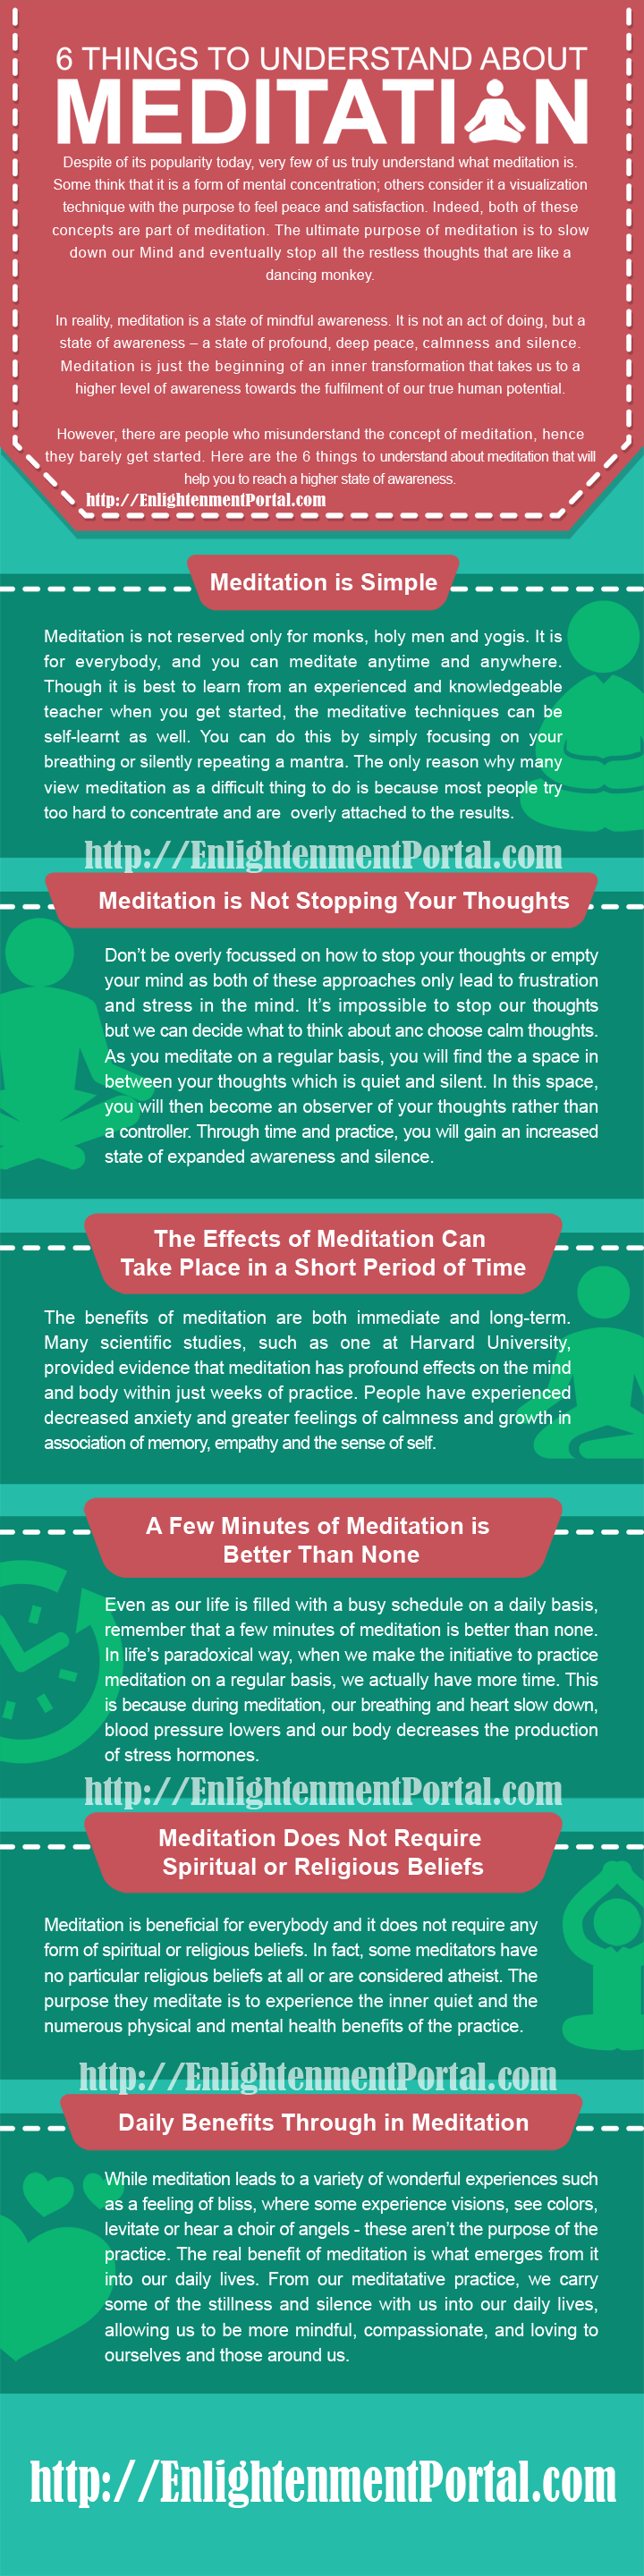 How to meditate deeply and effectively